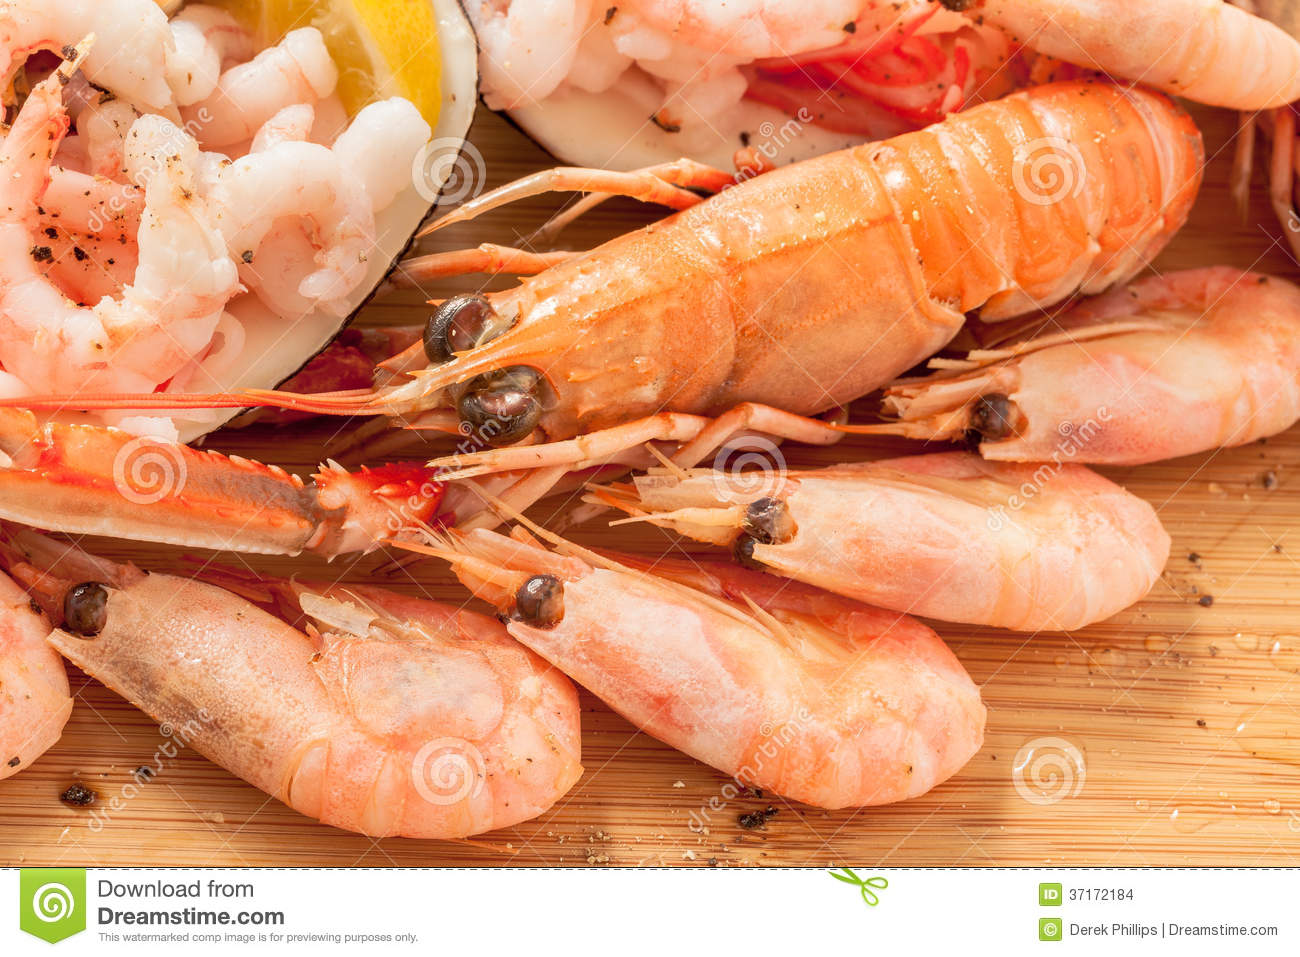 Langoustine - Home Page: Specialists in Irish prawns, langoustines ...